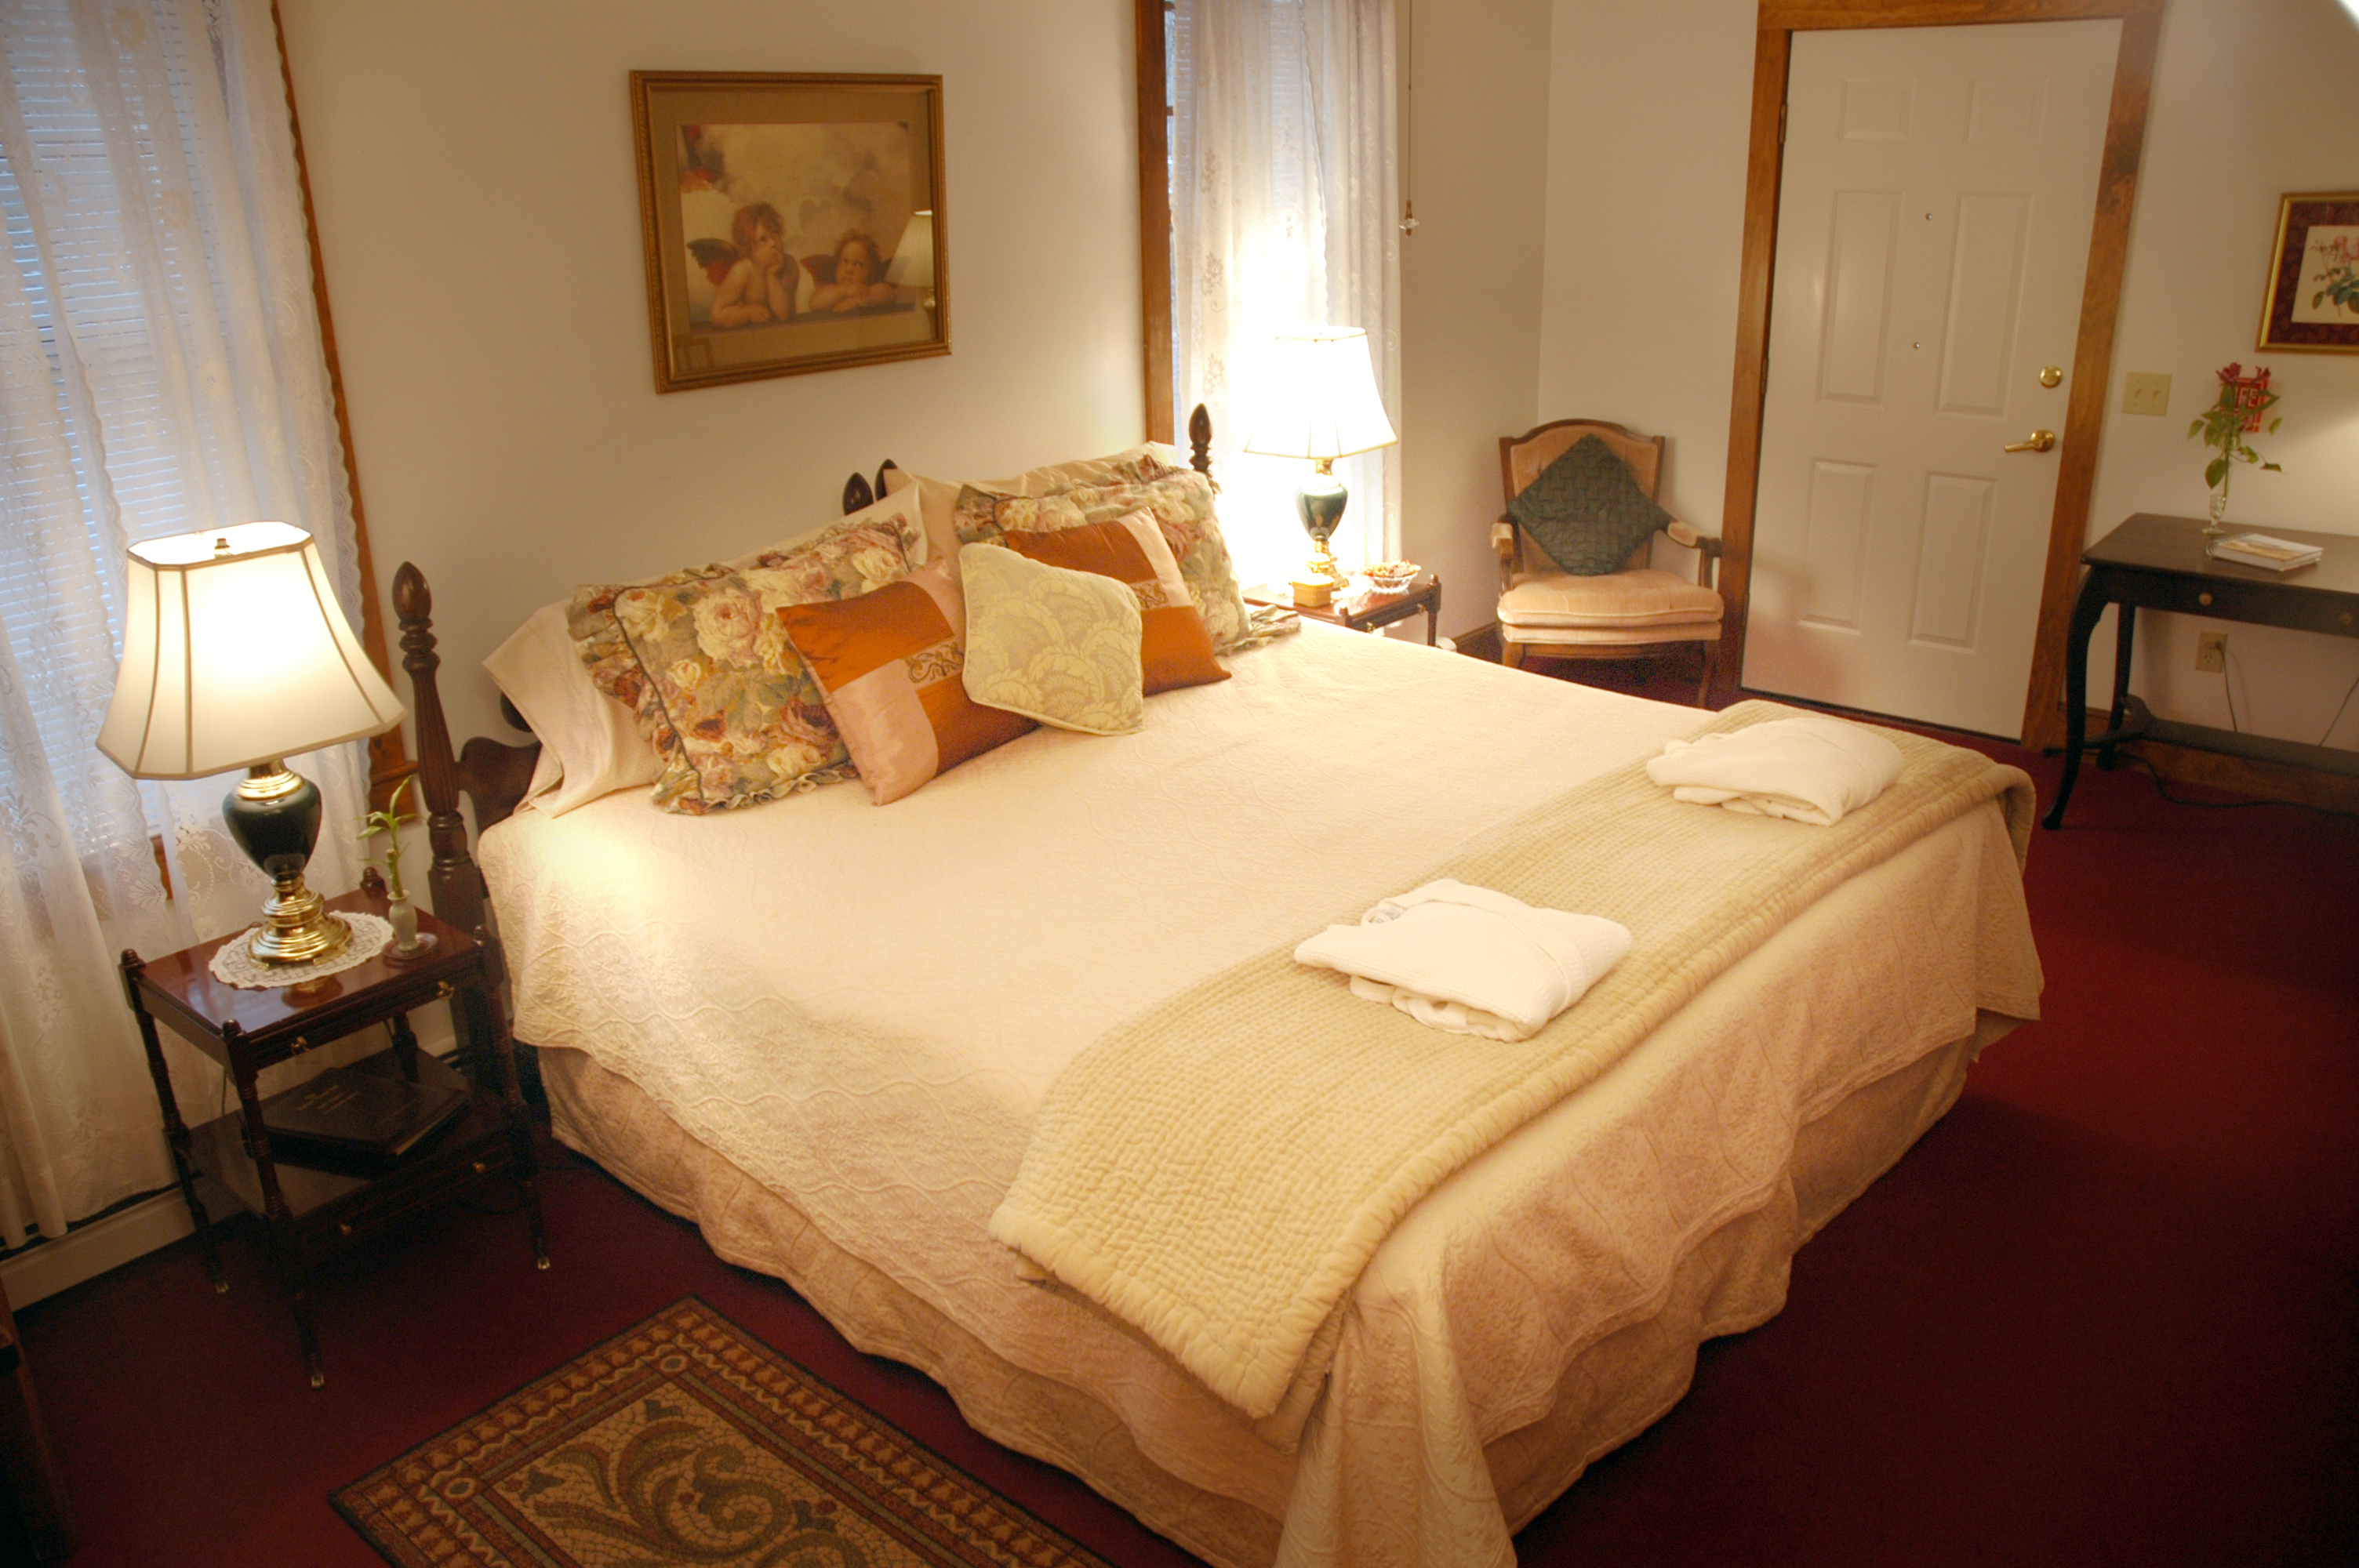 Cape Cod Bed Room D, ADA King bed